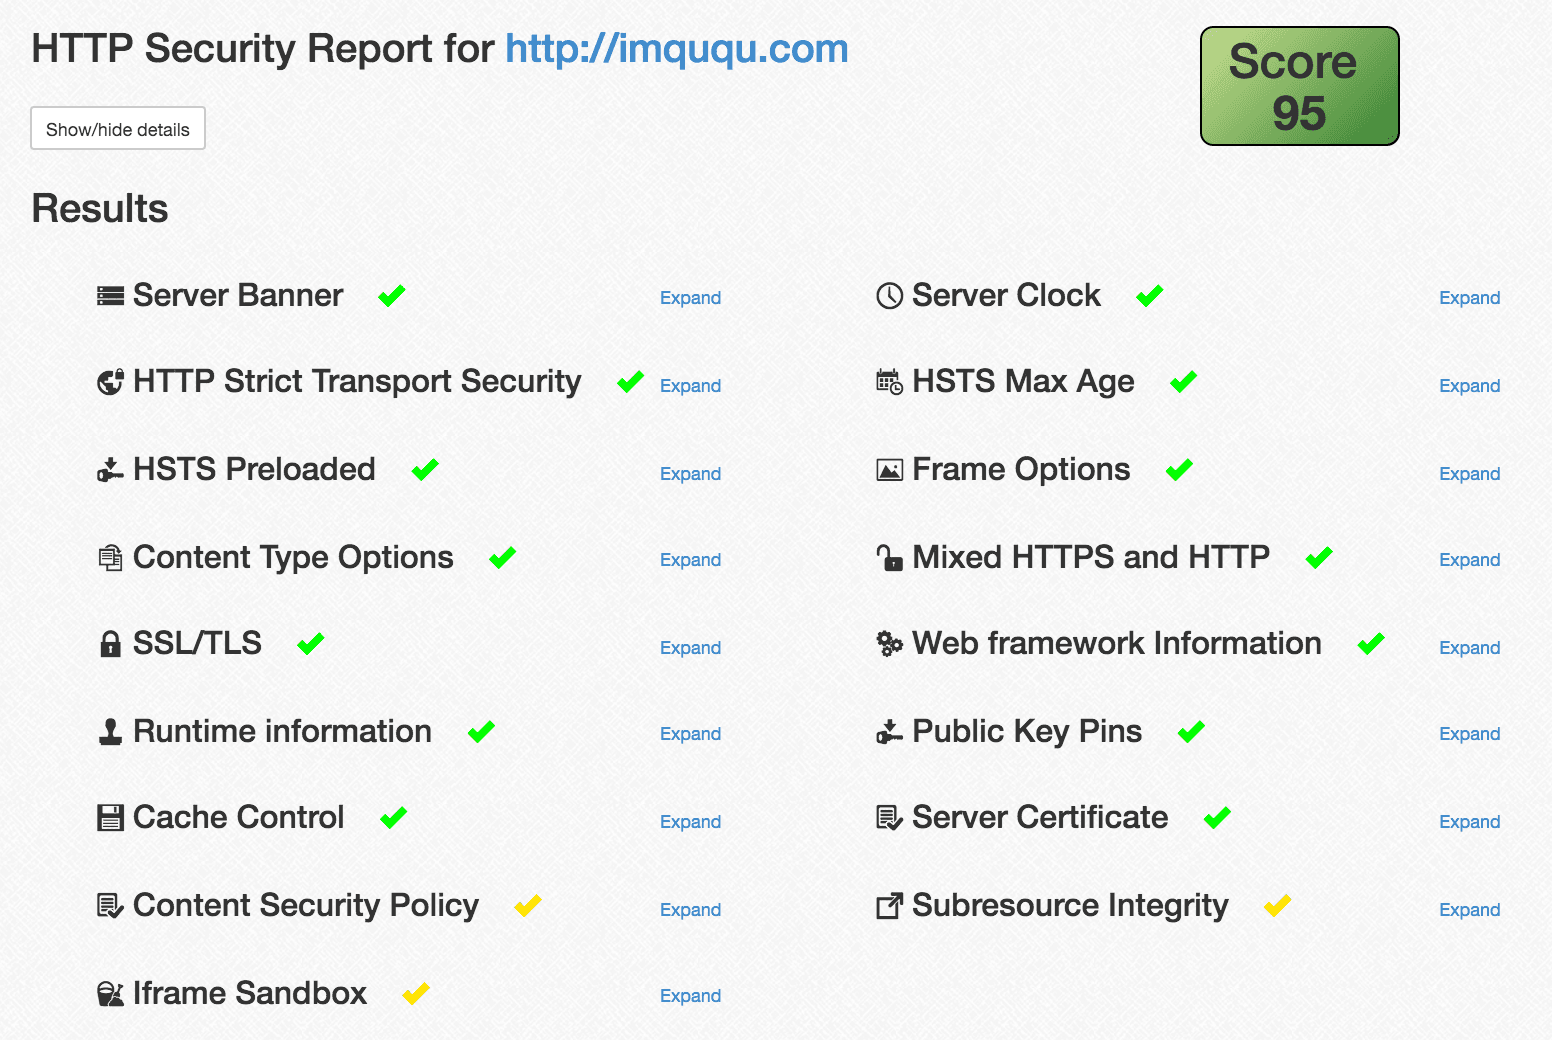 http security report of imququ.com